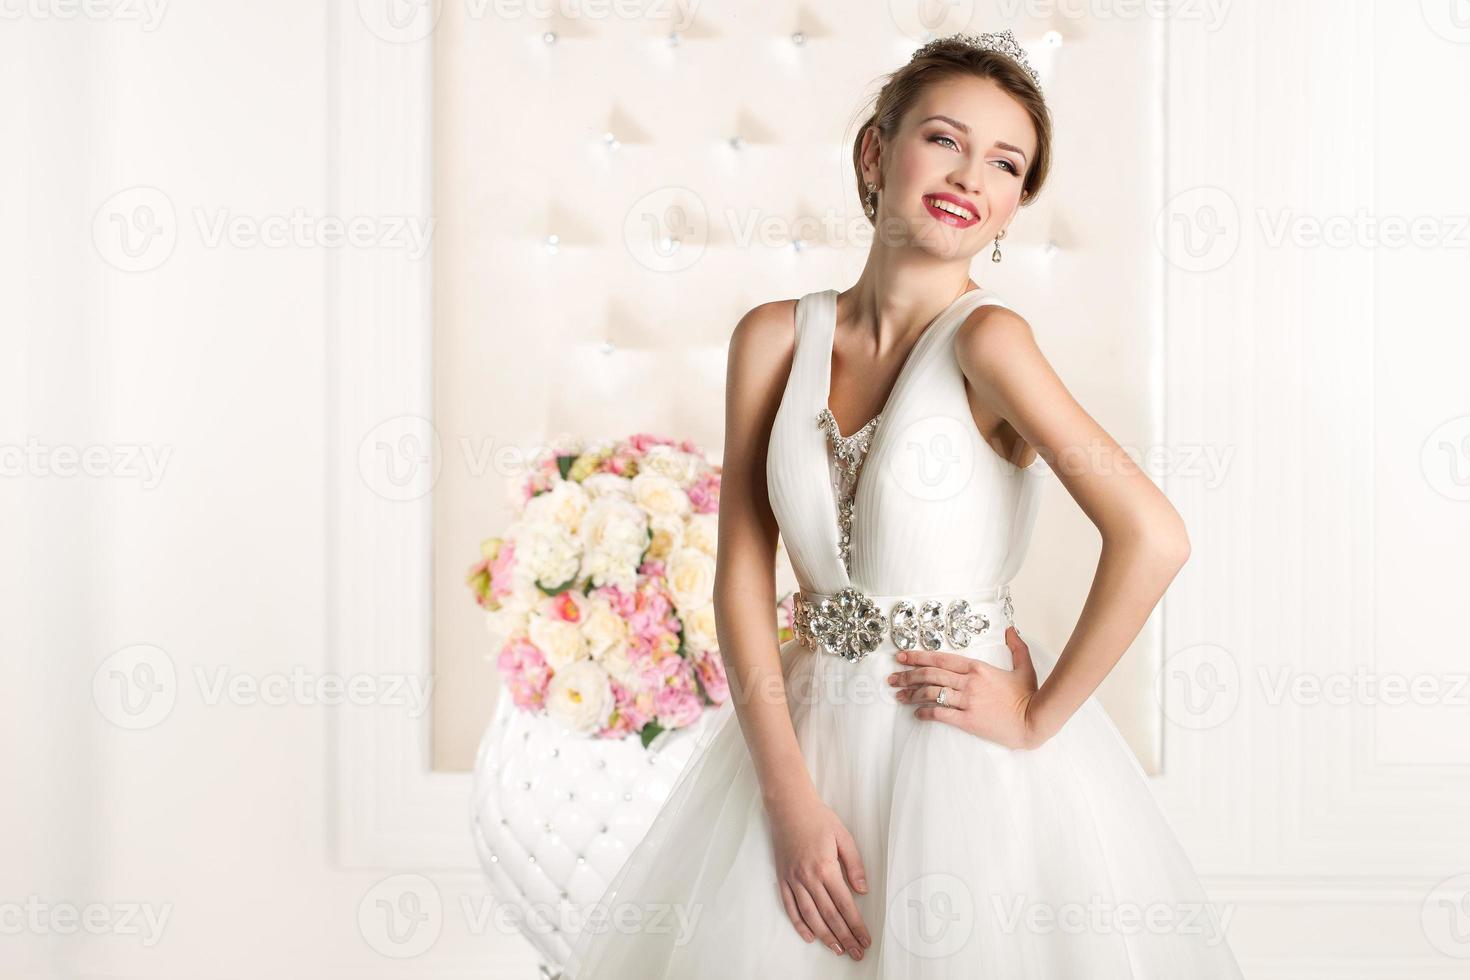 Gorgeous bride with white dress with flowers bouquet photo